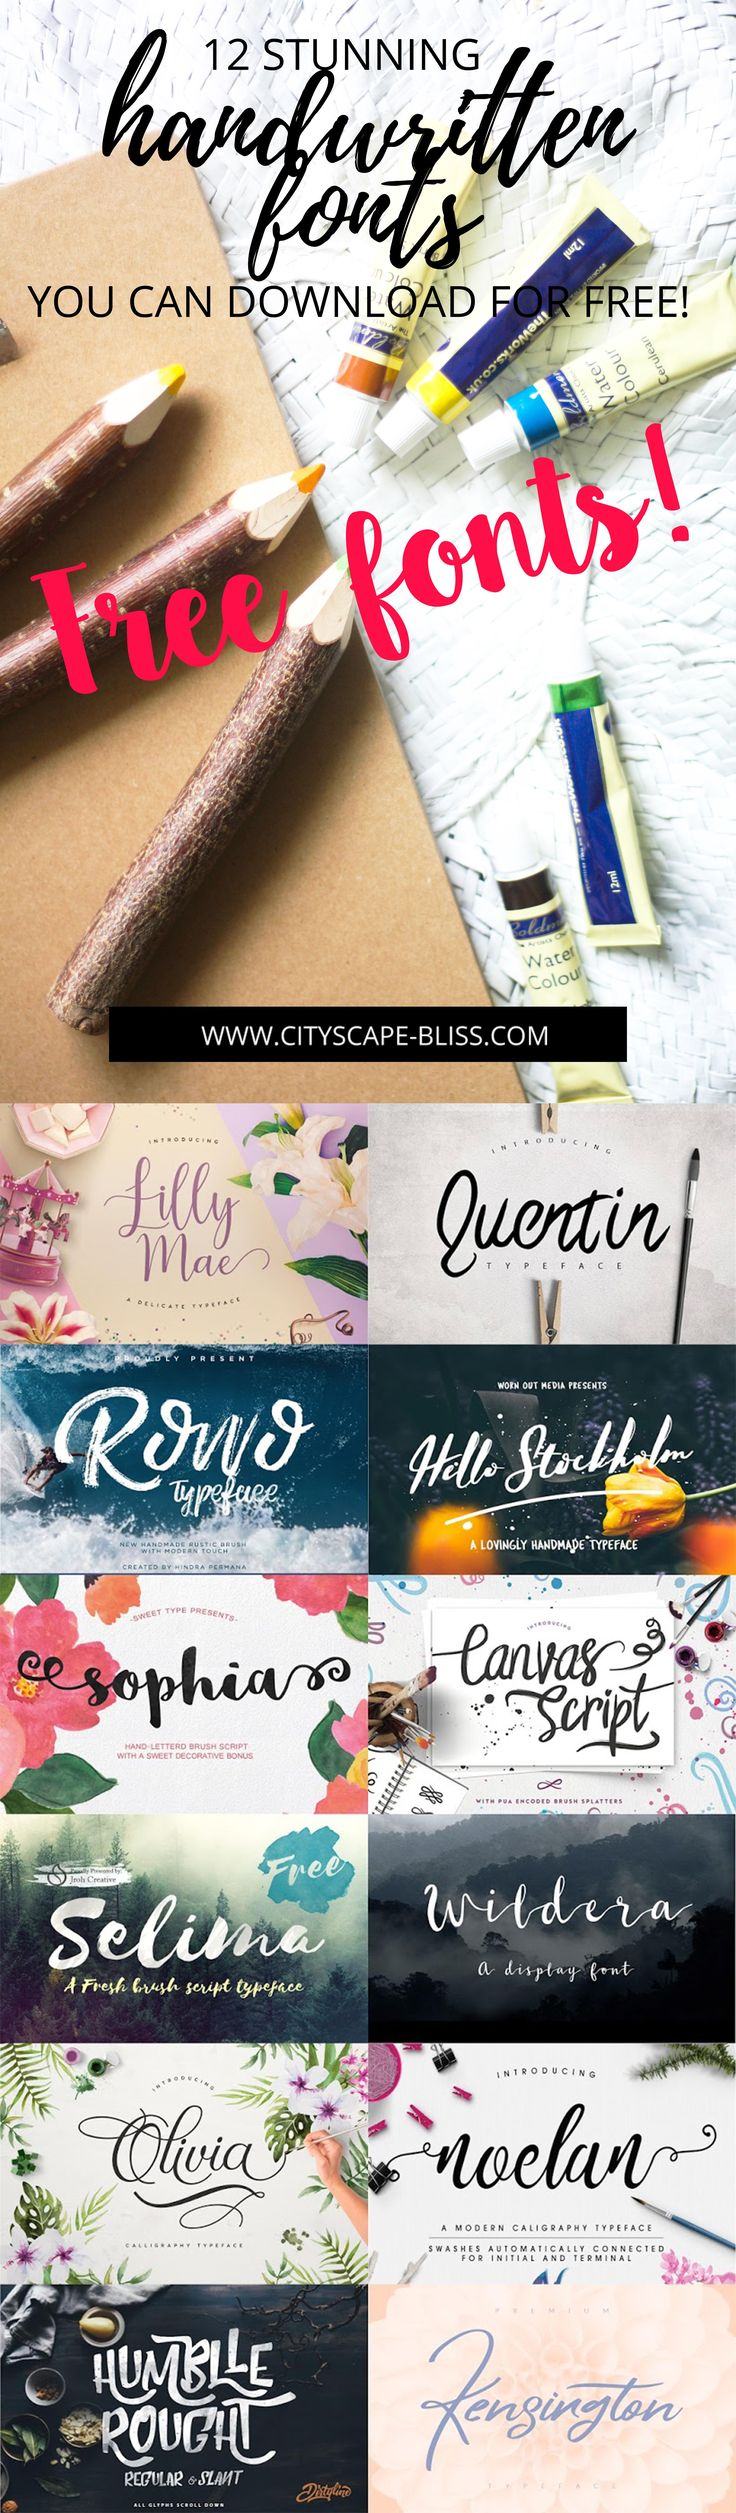 12 stunning handwritten fonts you can download FOR FREE Cityscape Bliss // Blog cheat sheet